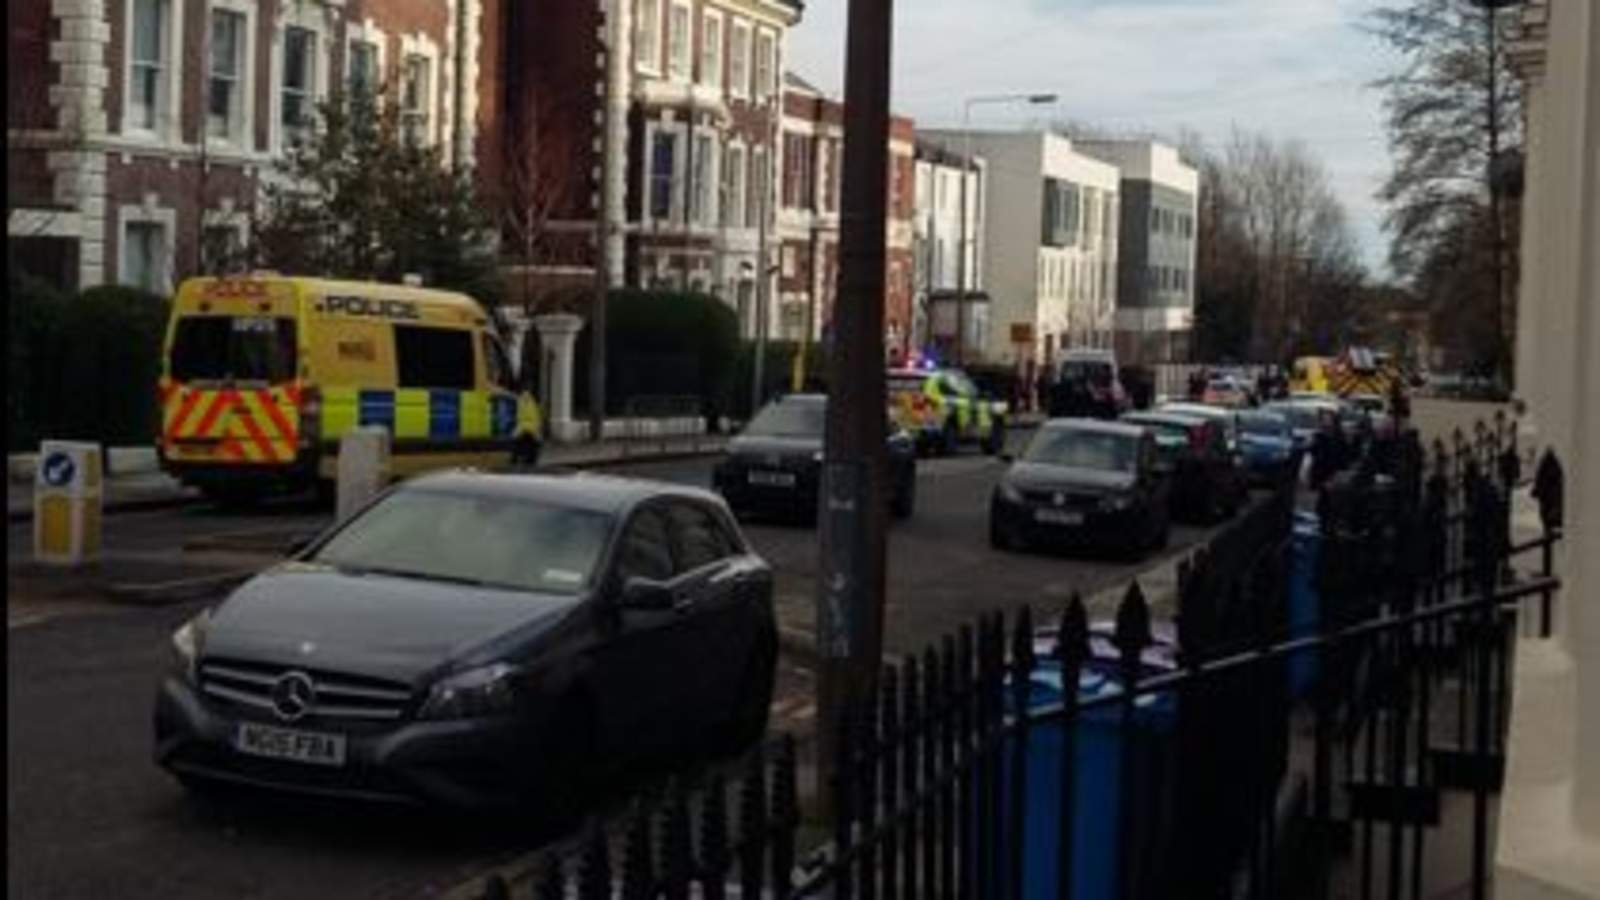 RT @SkyNews: Six children have been hit by a car outside a school in Liverpool https://t.co/dCL62w8SOE https://t.co/kkf6LzeOm6